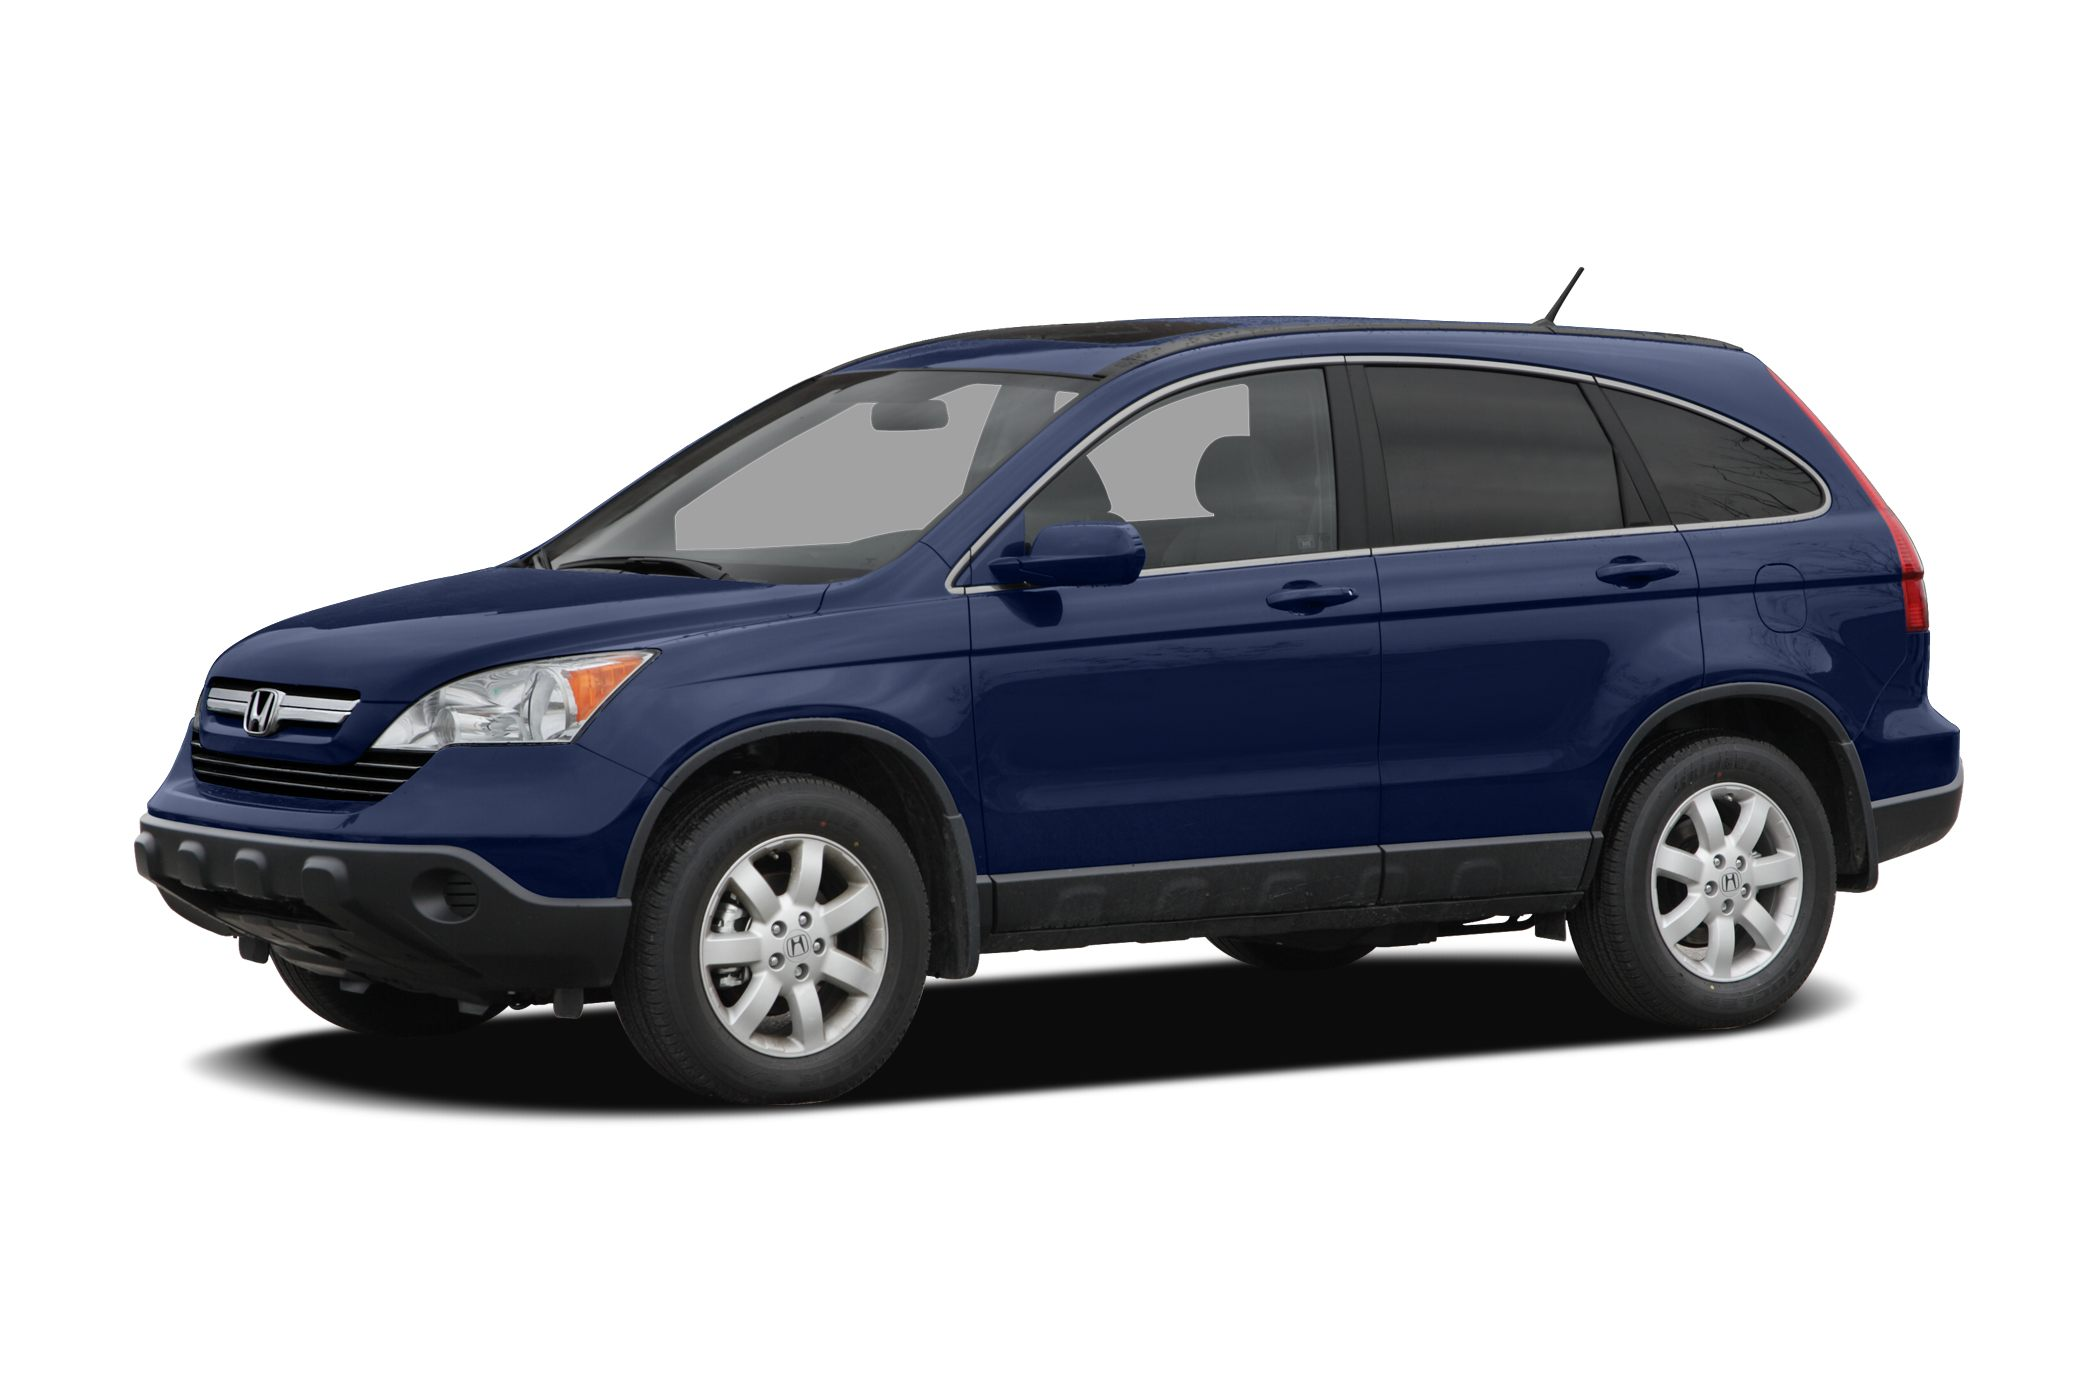 2007 Honda CR-V EX-L SUV for sale in La Vergne for $11,577 with 155,511 miles